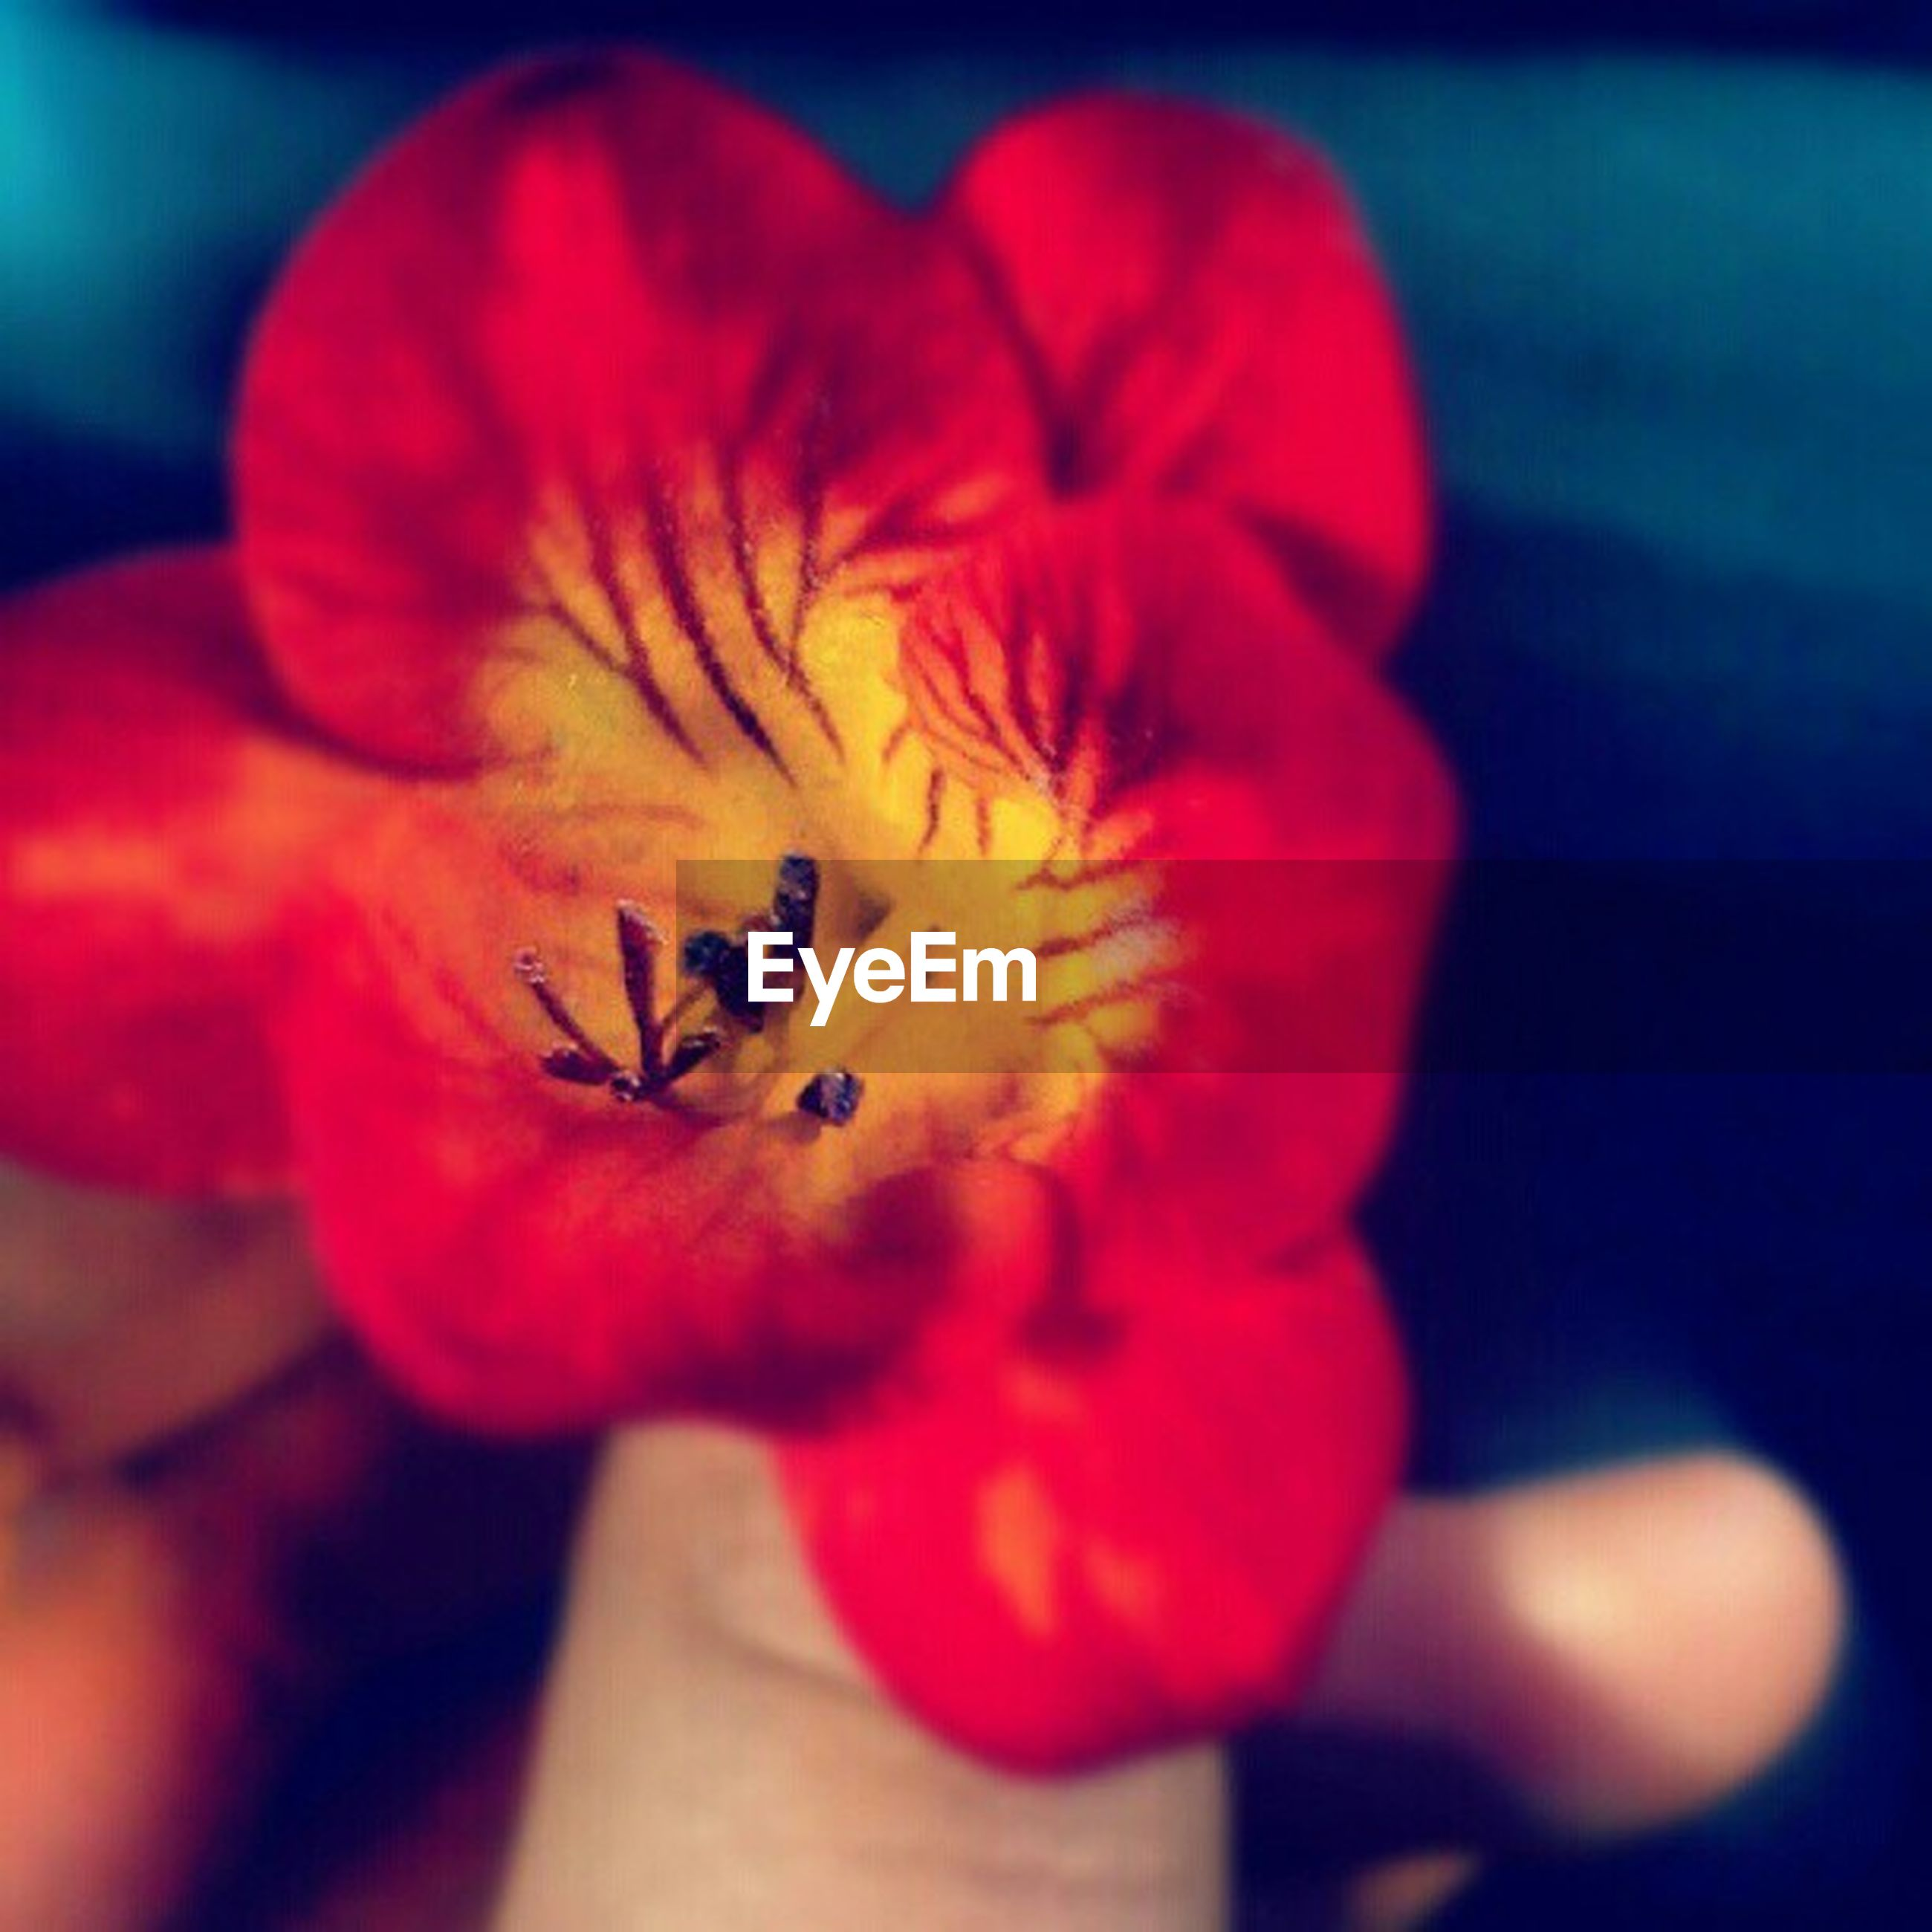 flower, petal, flower head, freshness, fragility, close-up, pollen, single flower, beauty in nature, focus on foreground, stamen, nature, blooming, growth, selective focus, red, person, in bloom, yellow, holding